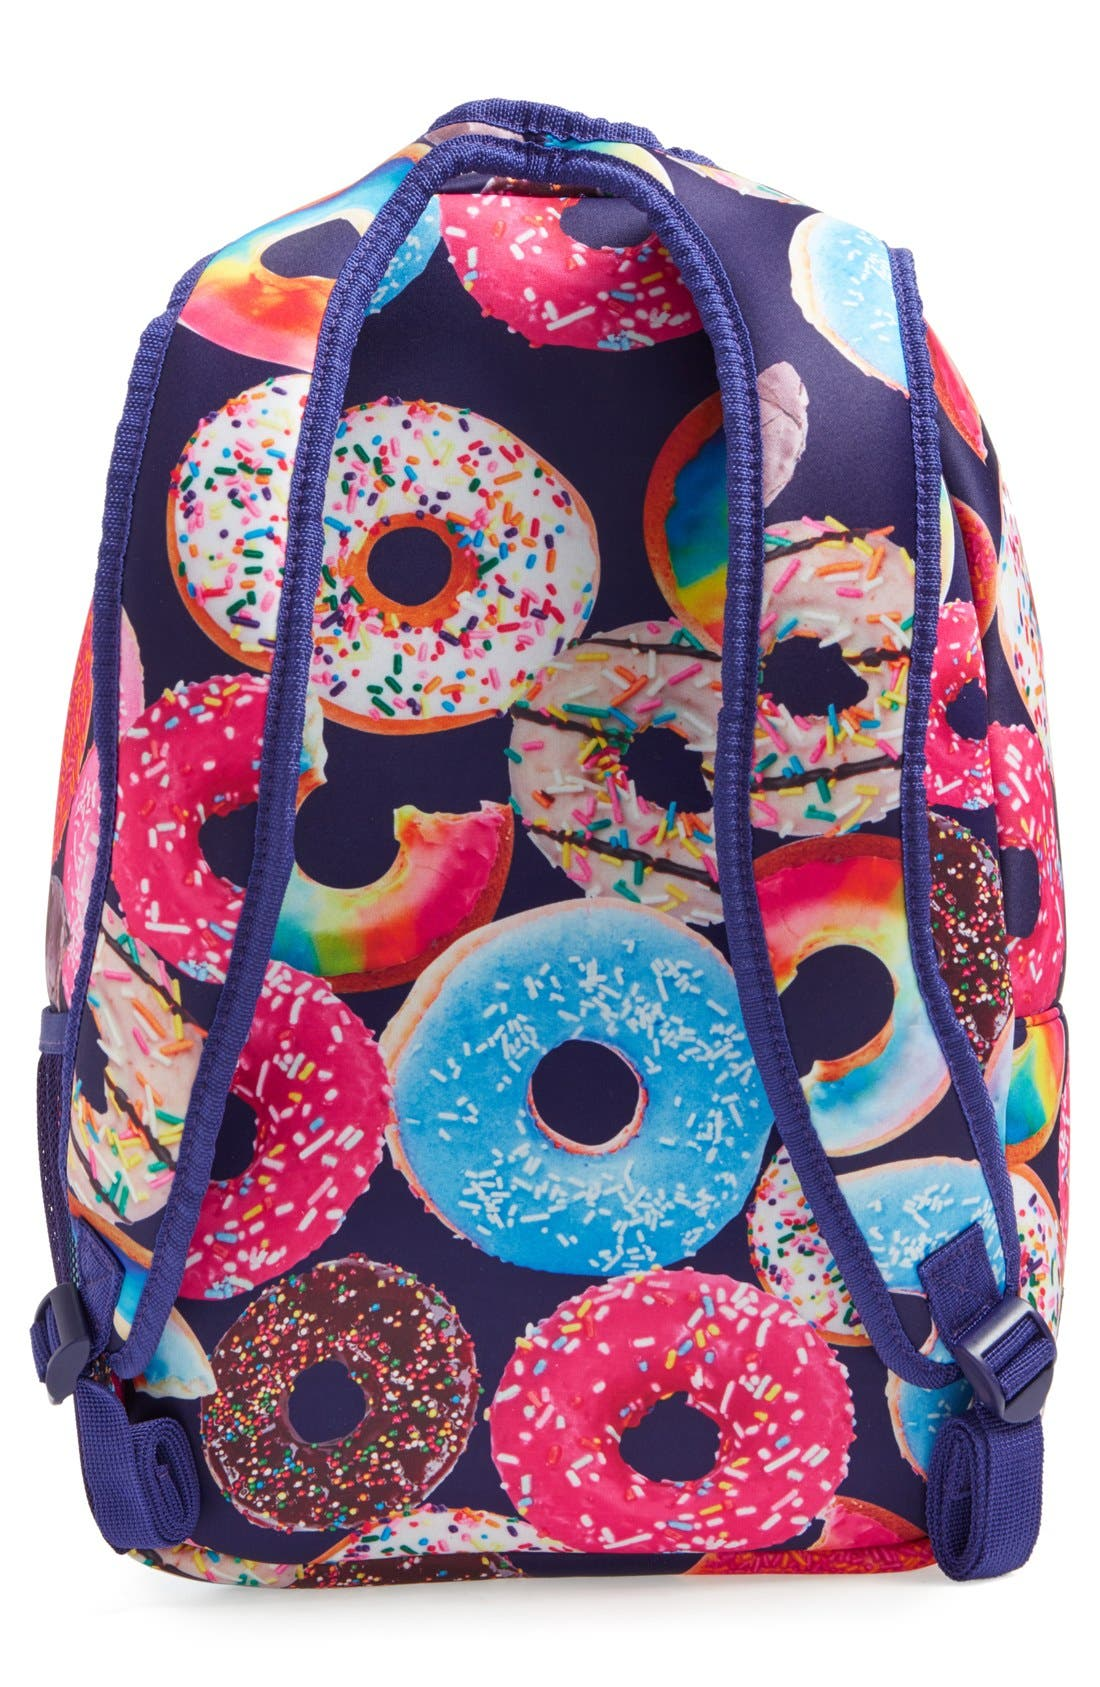 'Donut Shop' Neoprene Backpack,                             Alternate thumbnail 3, color,                             001